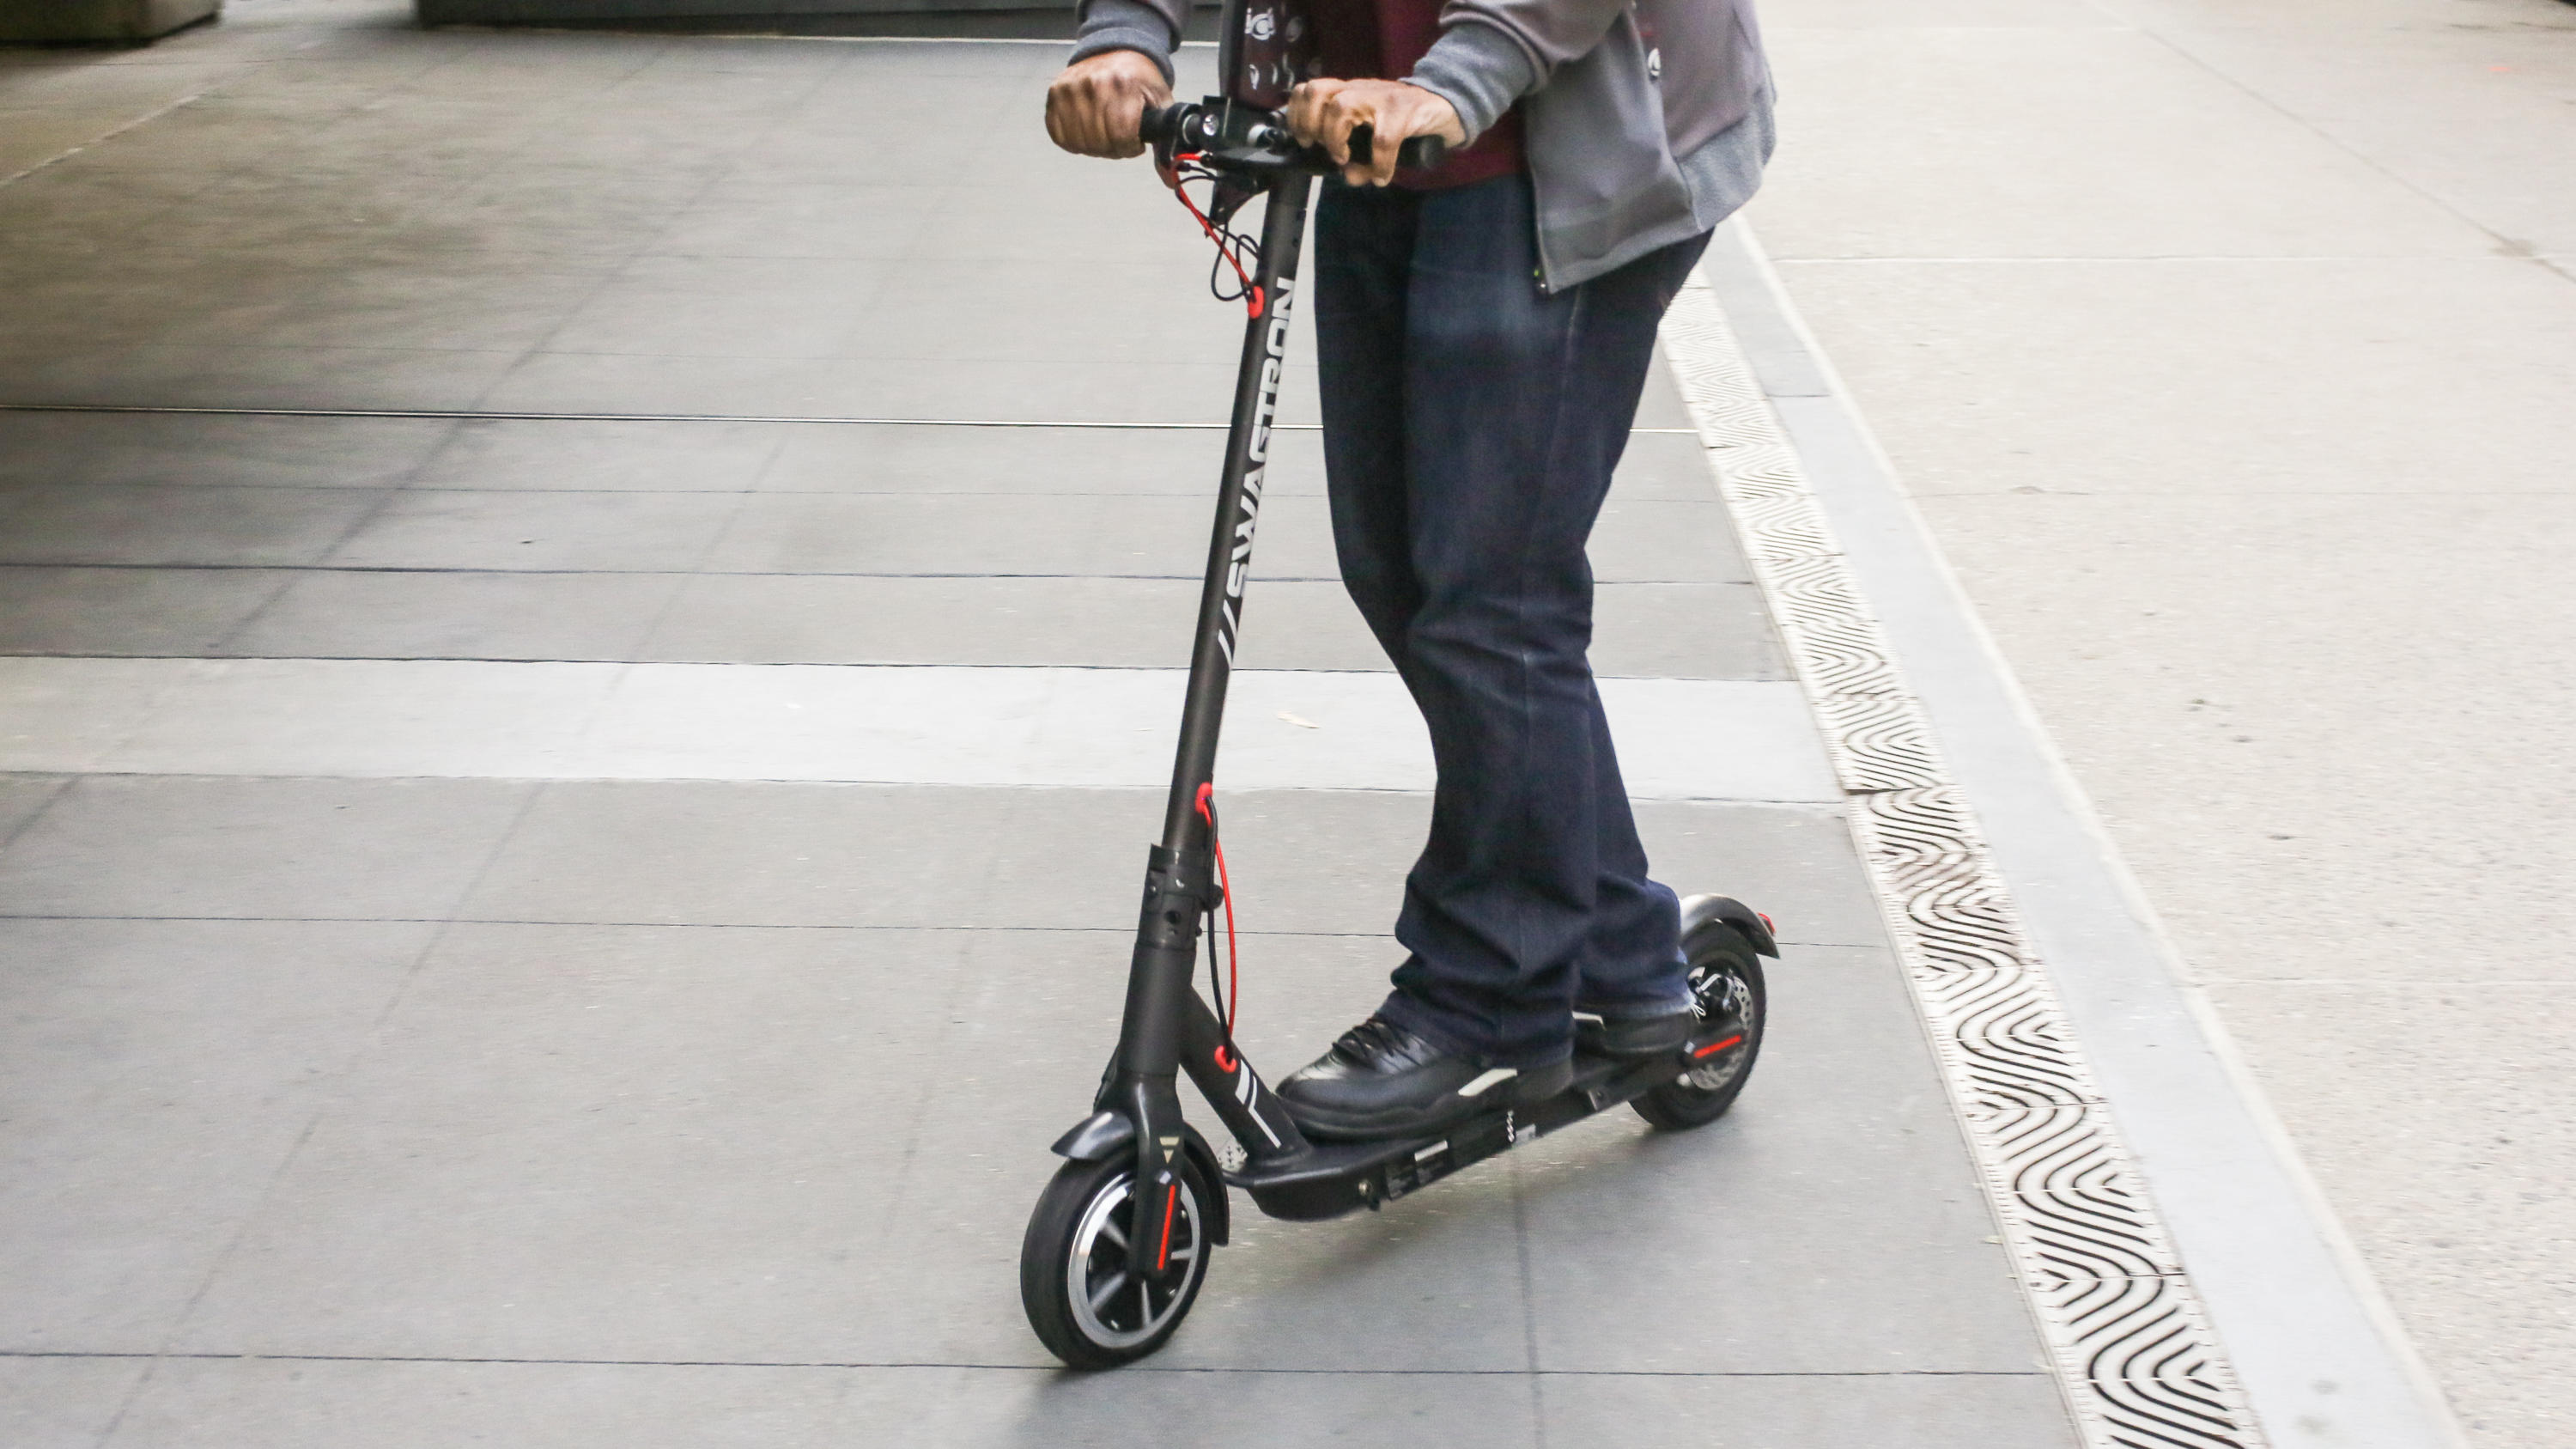 16 swagtron swagger 5 electric folding scooter | Best electric scooter for summer 2021 - Roadshow | The Paradise